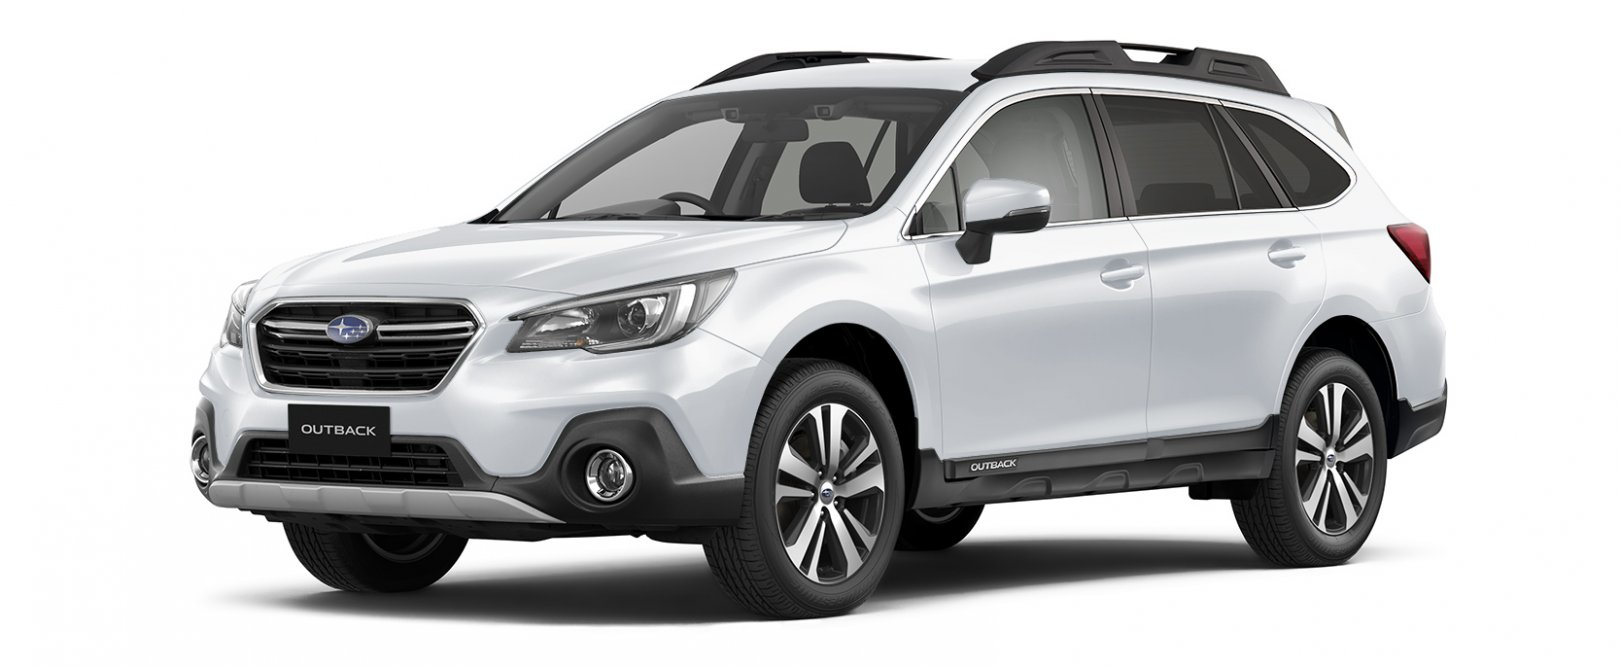 Outback 2.5i Sport crystal white pearl